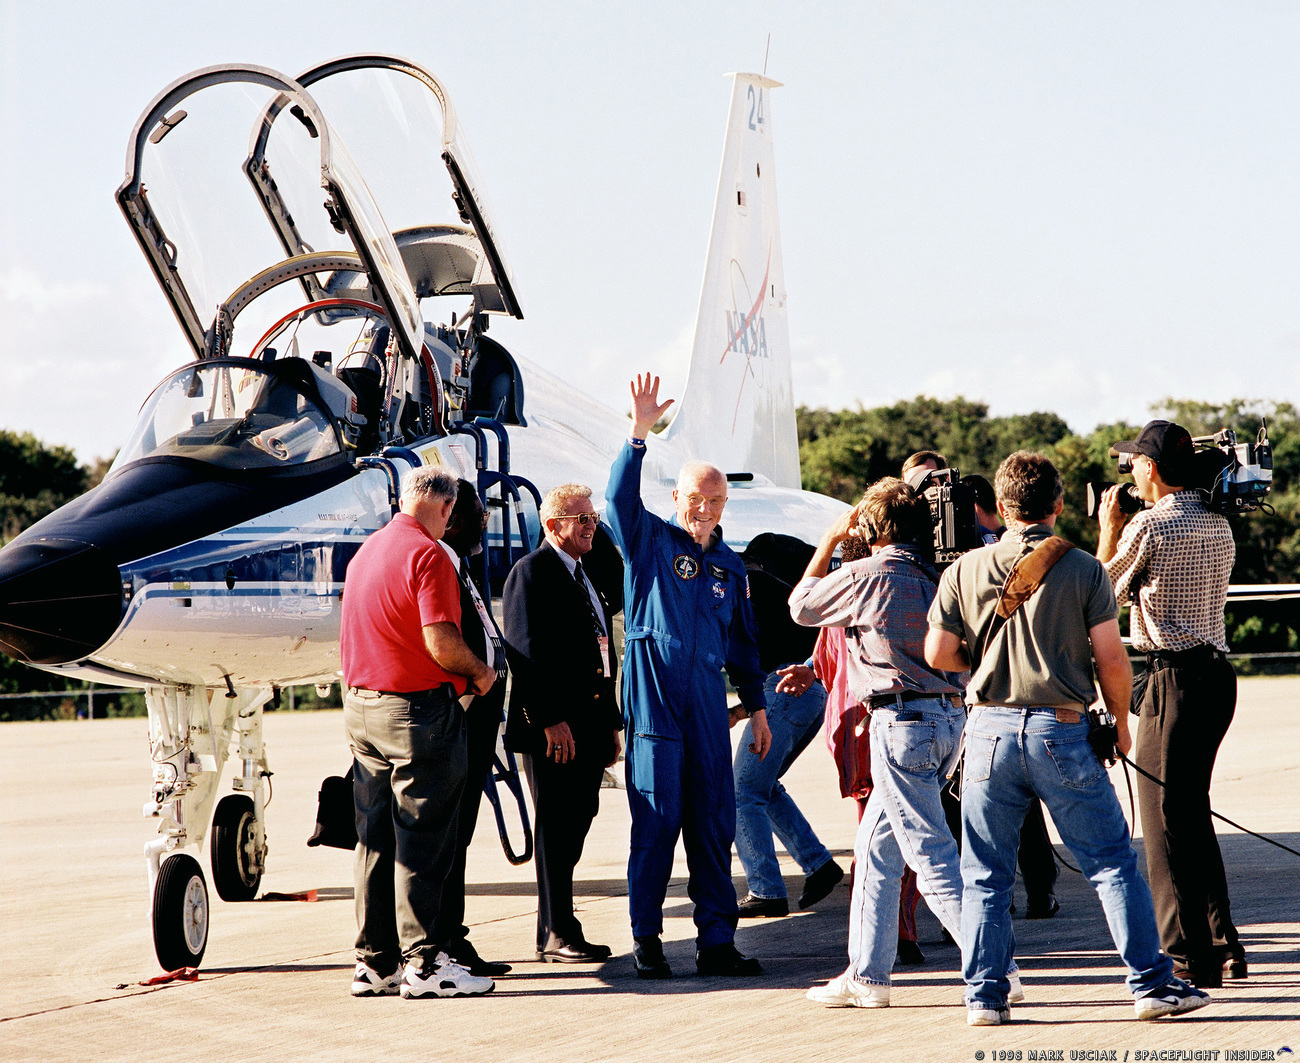 John Glenn waves after touching down at Kennedy Space Center in Florida in 1998. Photo Credit: Mark Usciak / SpaceFlight Insider